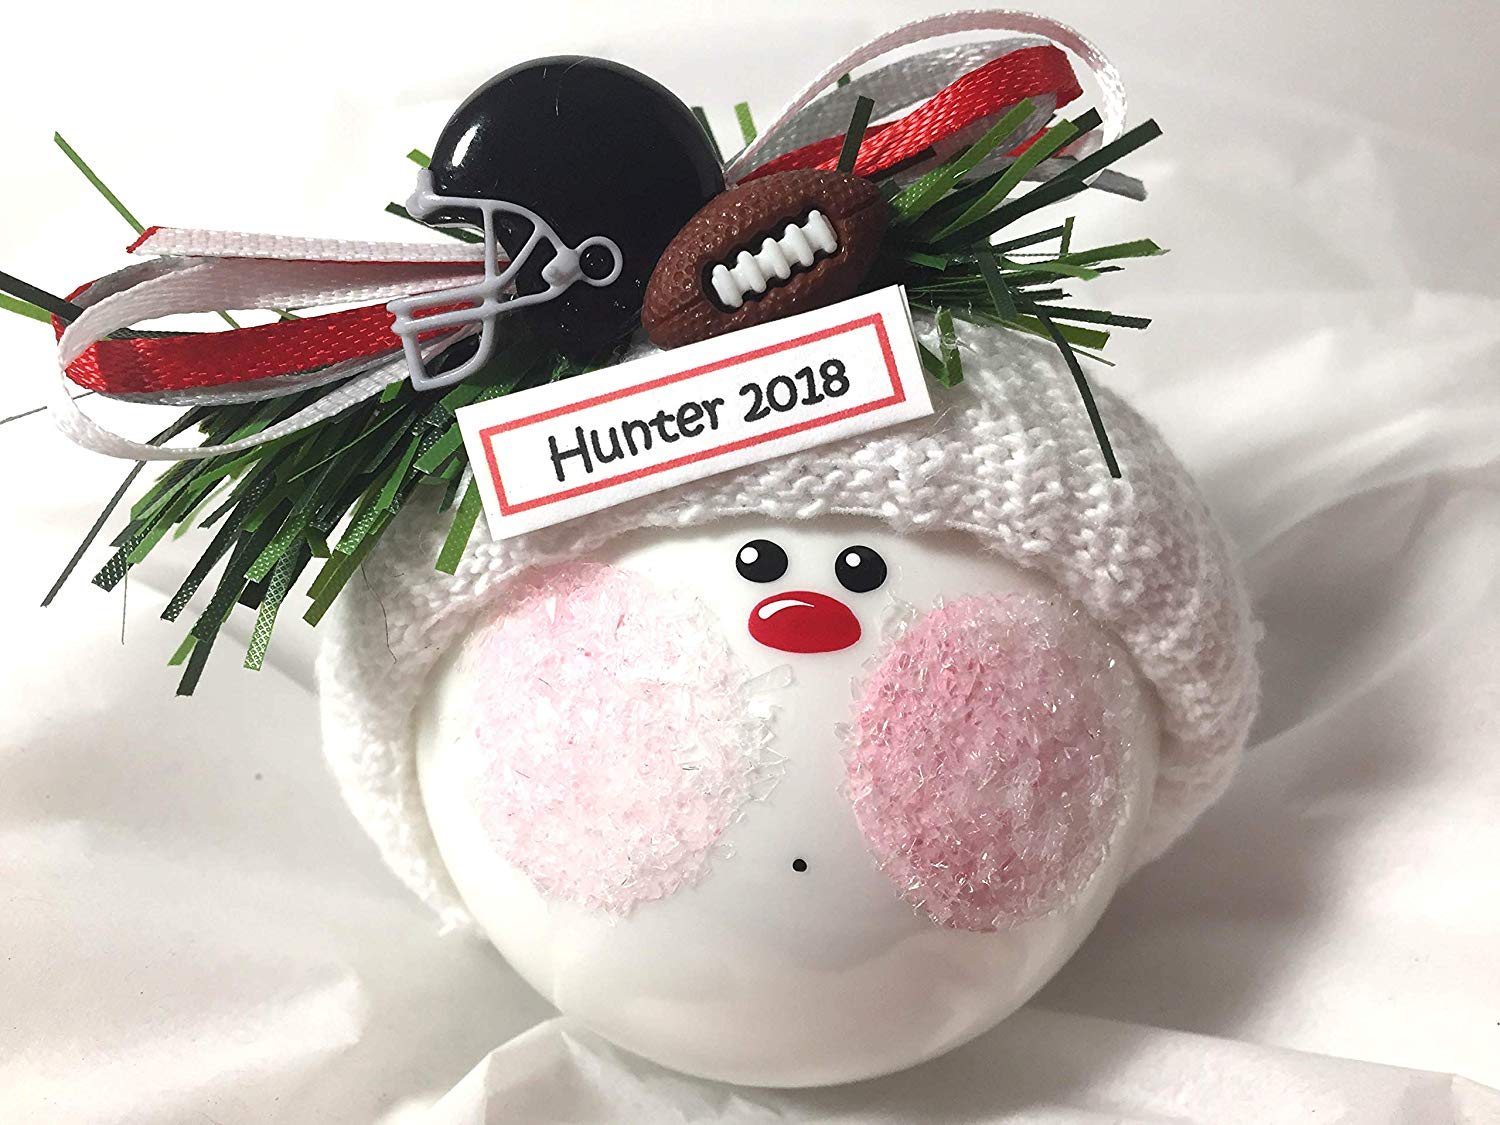 d20527385b0 Get Quotations · Football Christmas Ornament Football Helmet Personalized  Sports Hand Painted Handmade and Themed by Townsend Custom Gifts